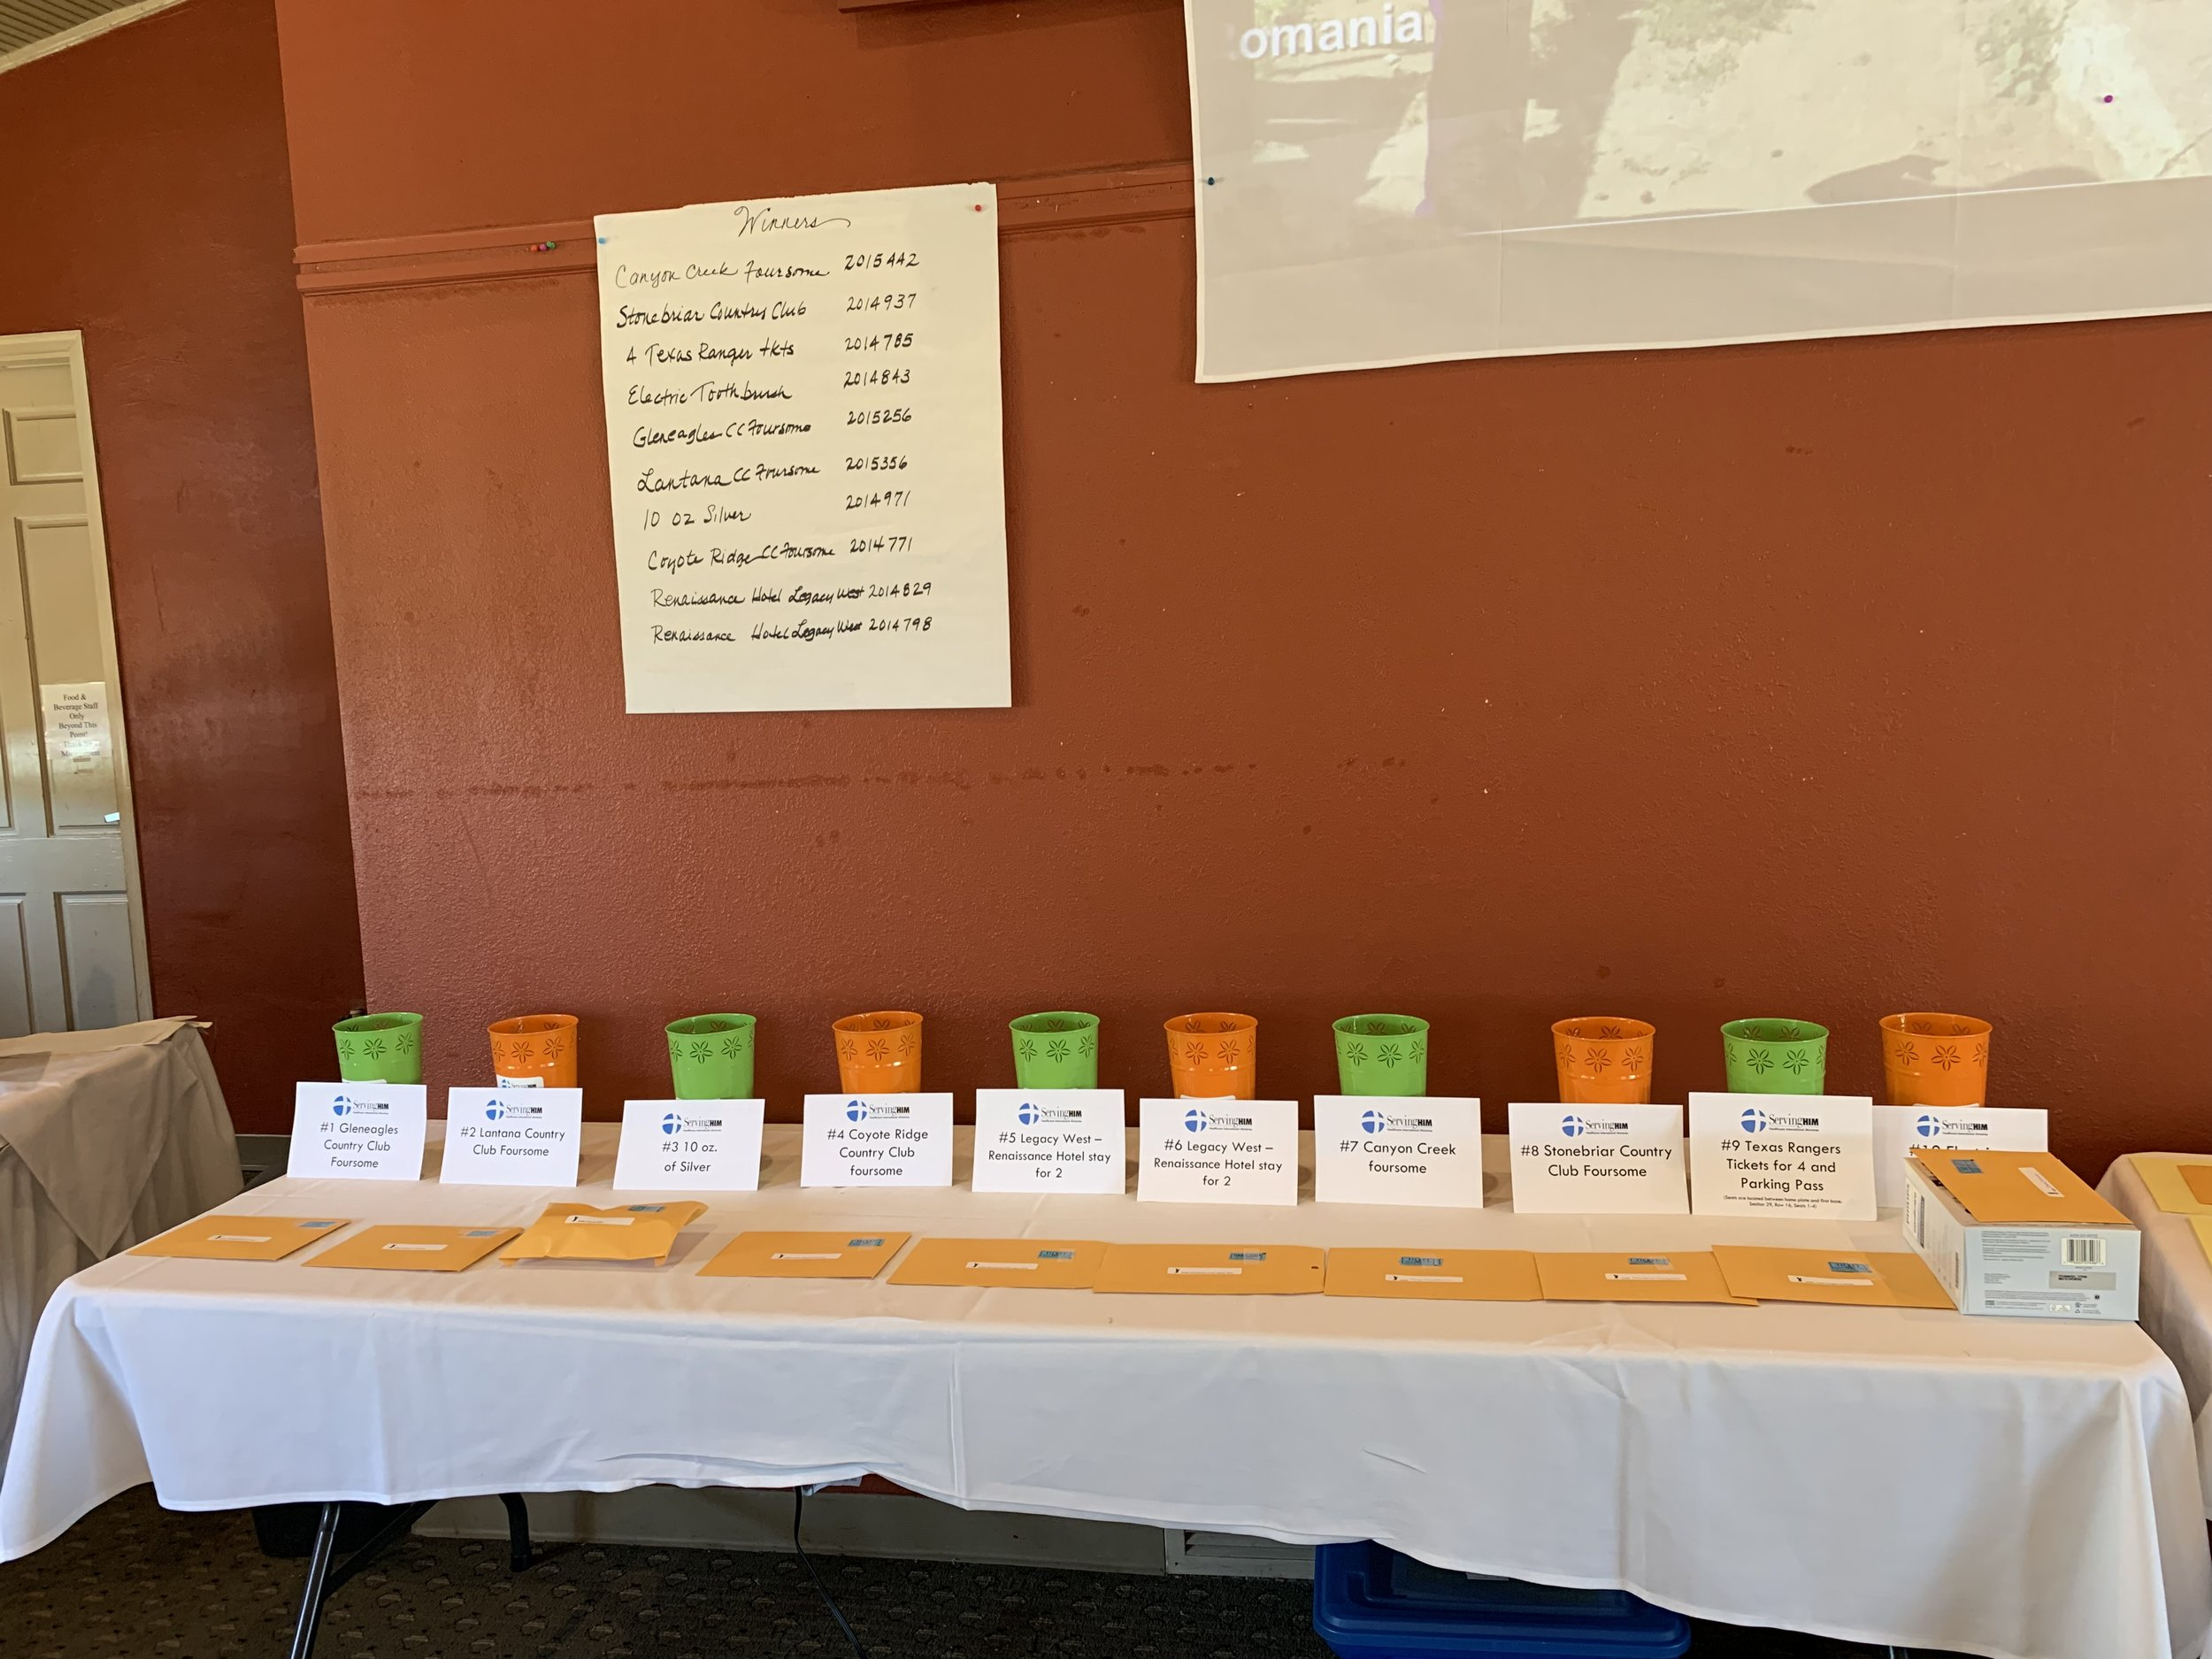 Photo Apr 26, 11 06 08 AM.jpg